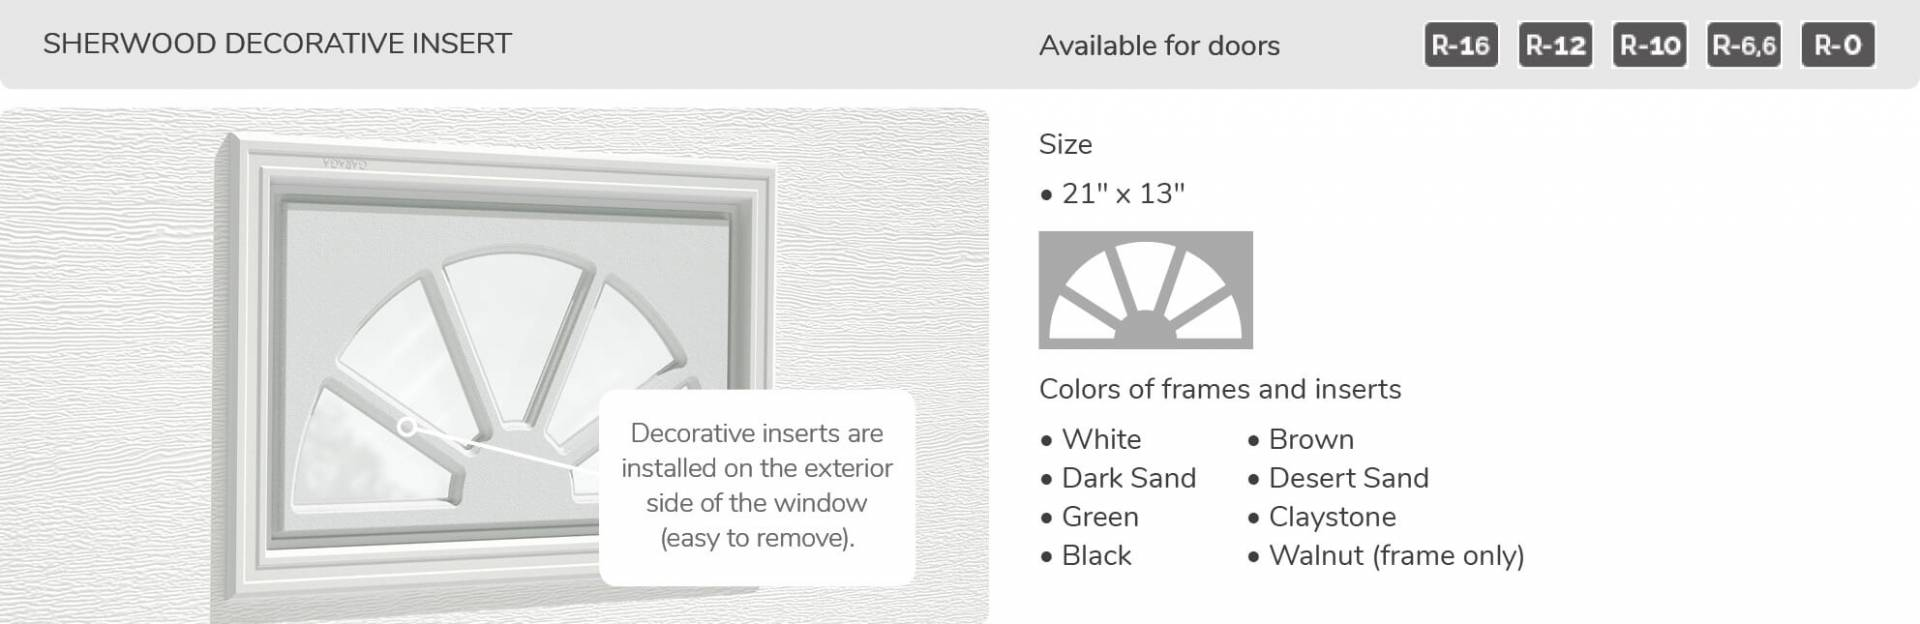 Sherwood Decorative Inserts, 21' x 13', available for doors R-16, R-12, R-10, R-6,6 and R-0